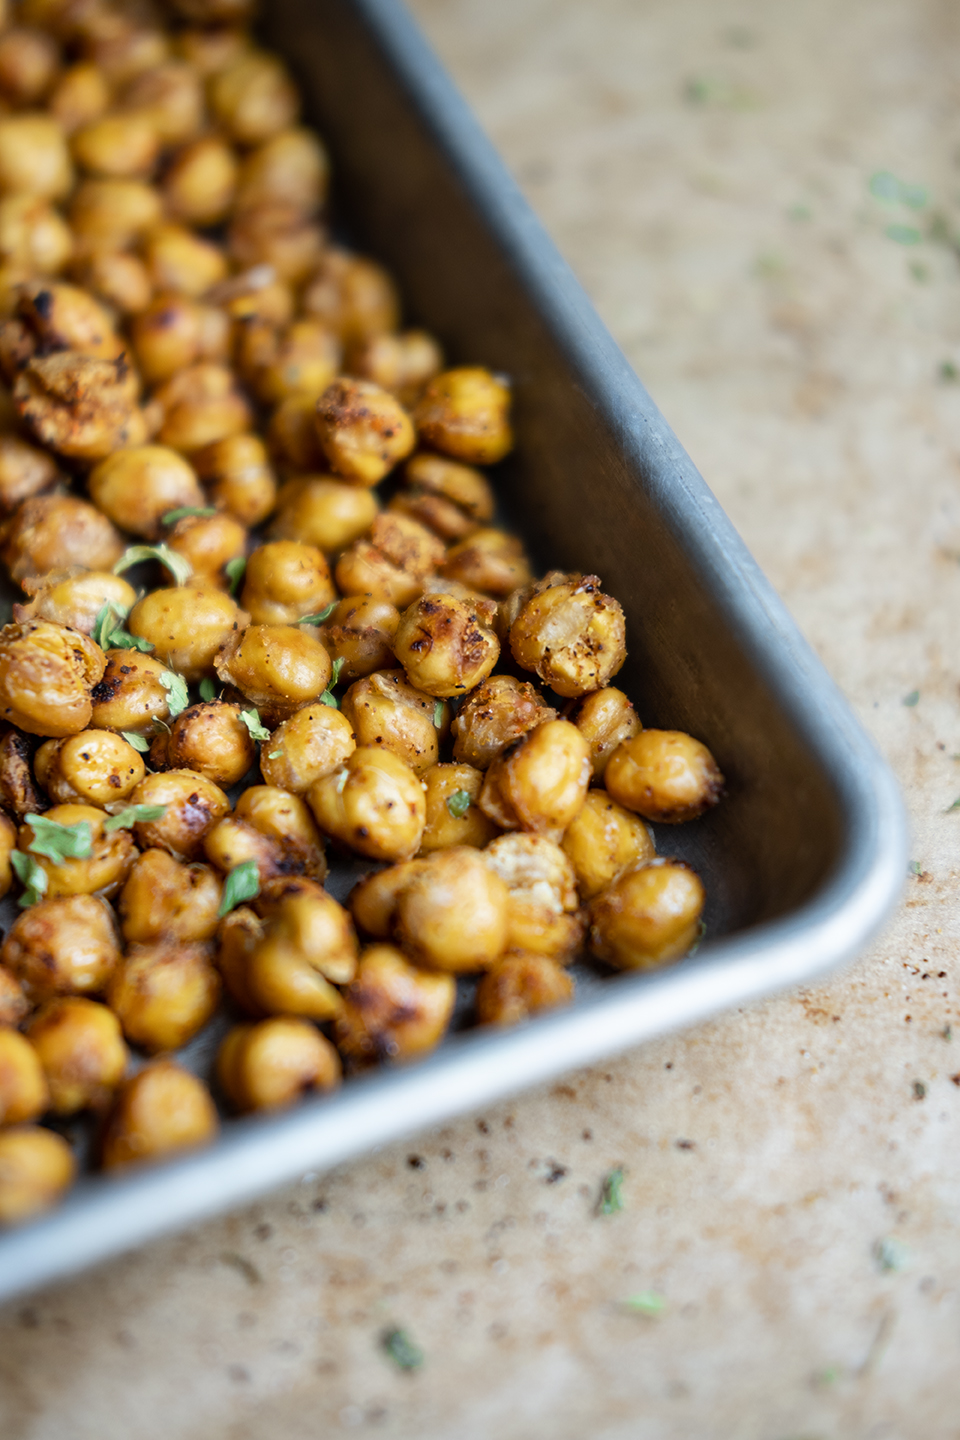 Spicy roasted chickpeas on a metal tray.